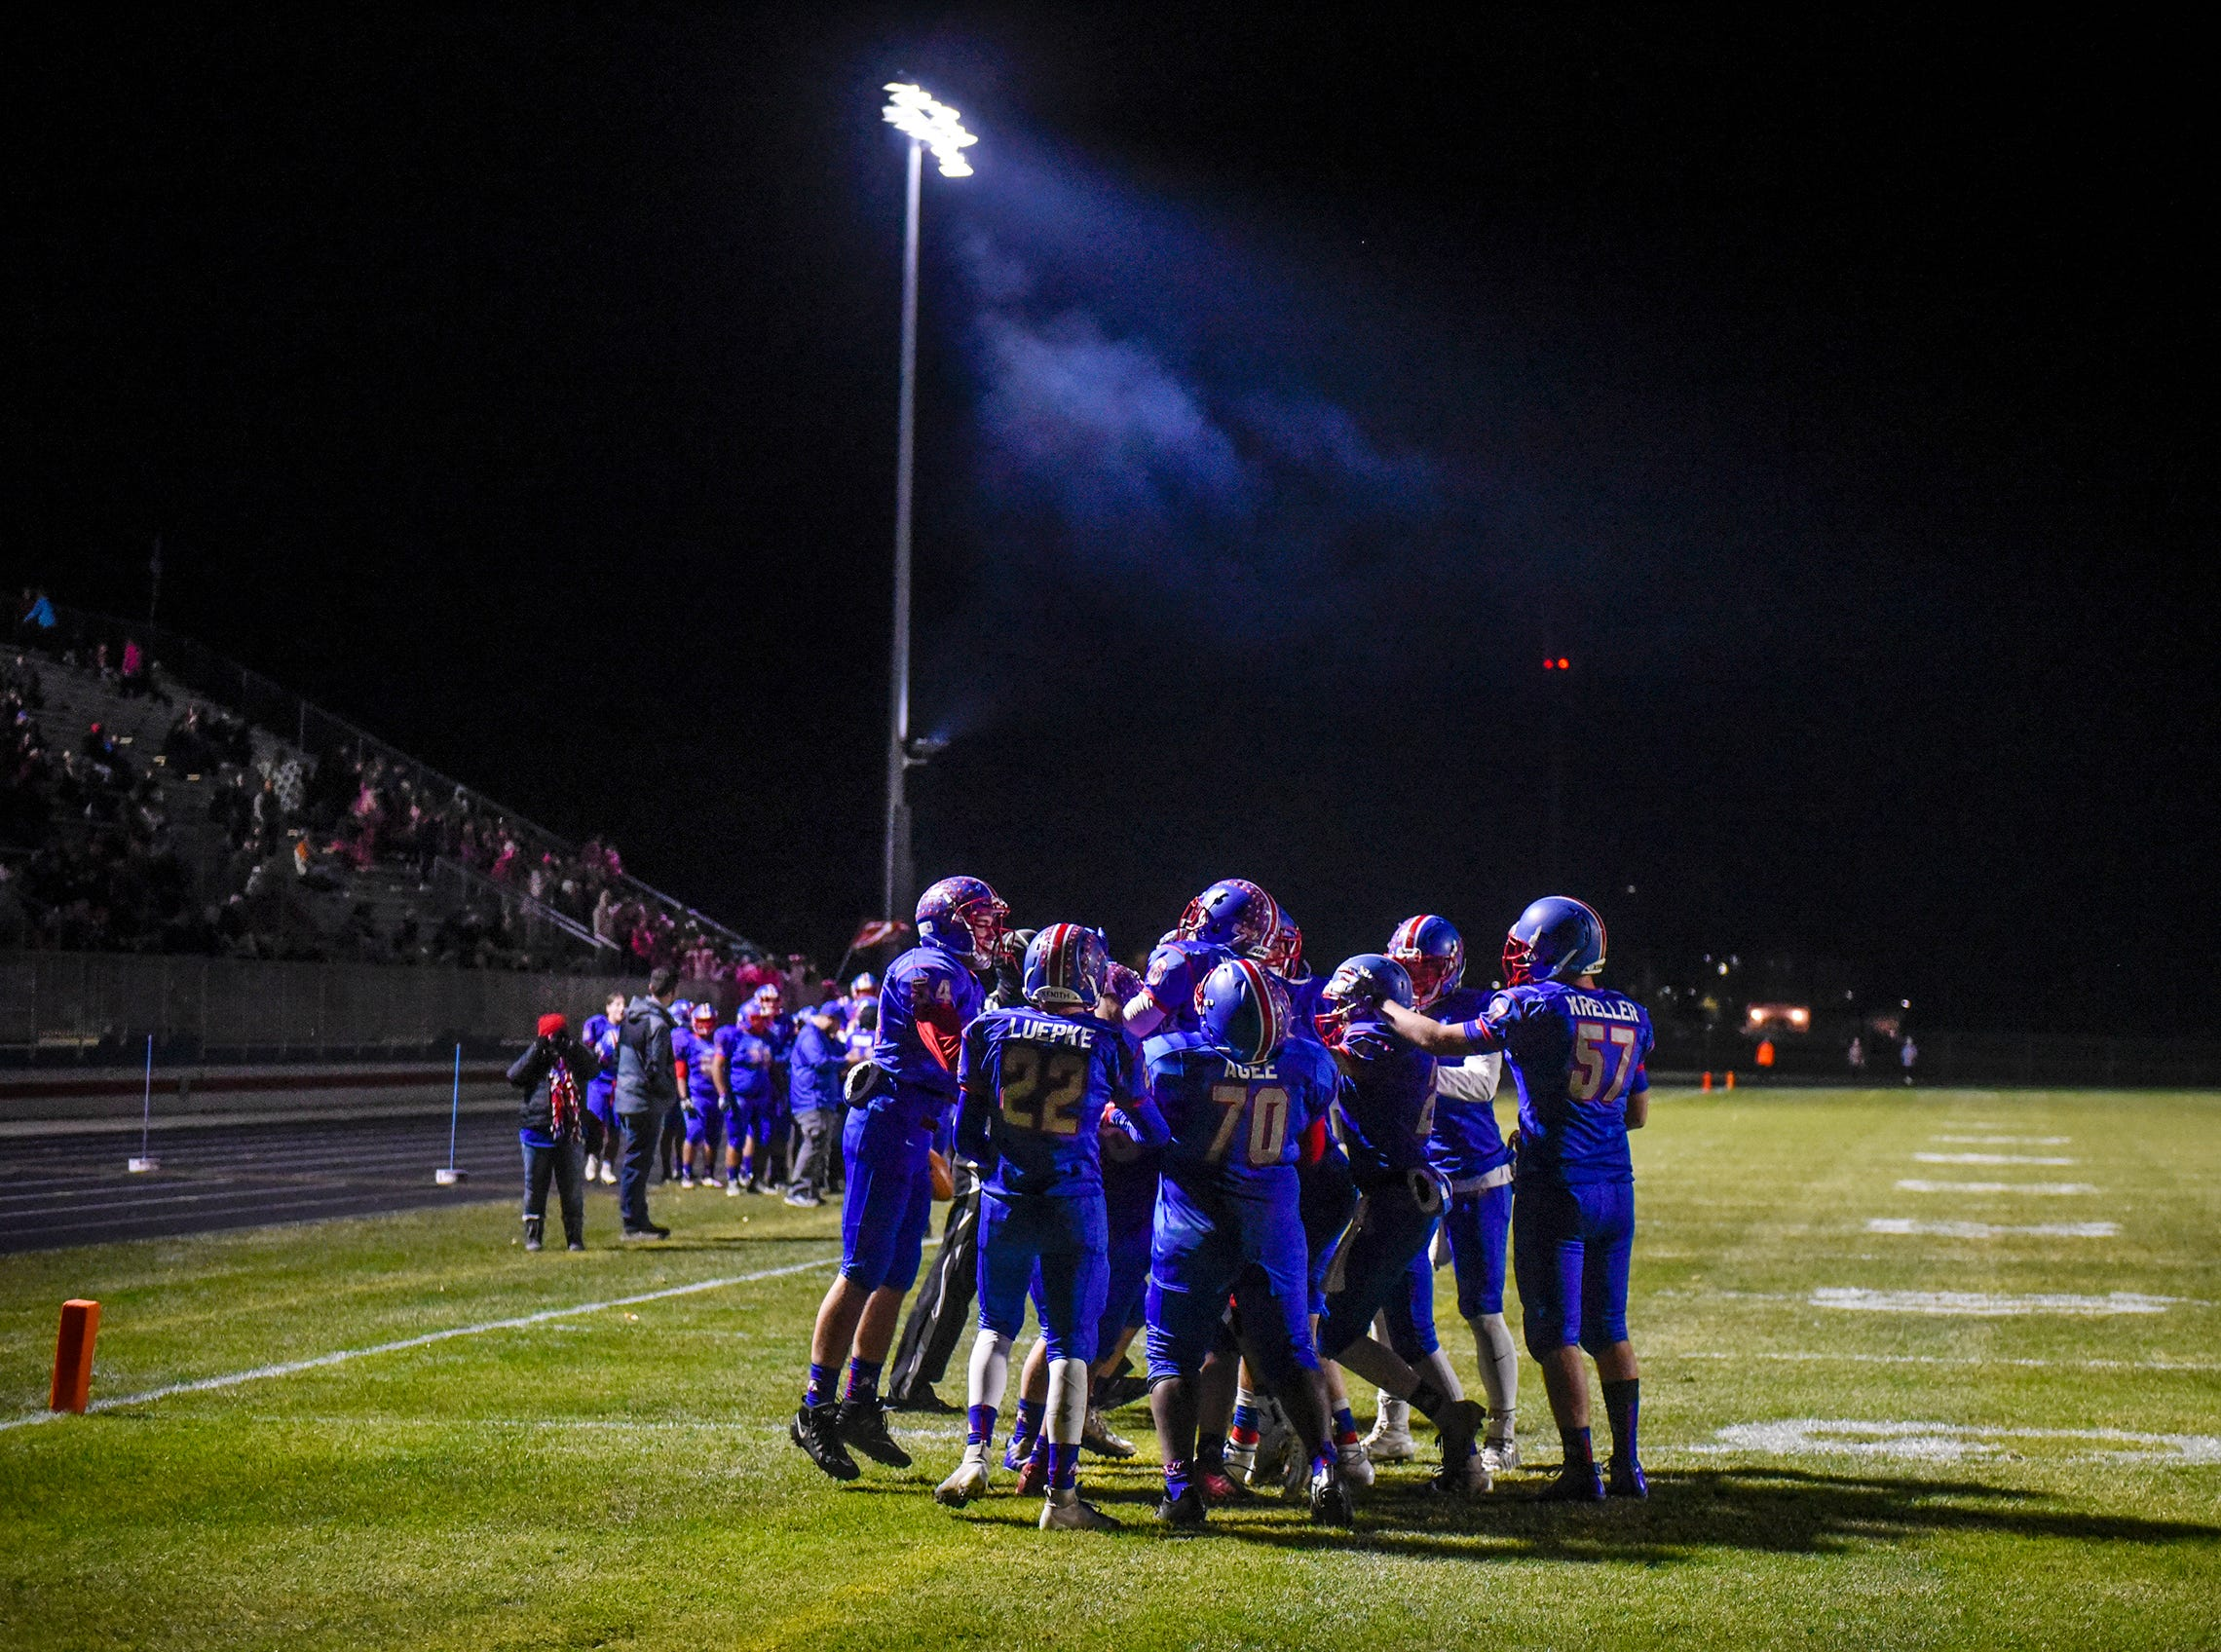 Apollo players gather to celebrate a touchdown during the first half of the Tuesday, Oct. 23, game against Little Falls in St. Cloud.